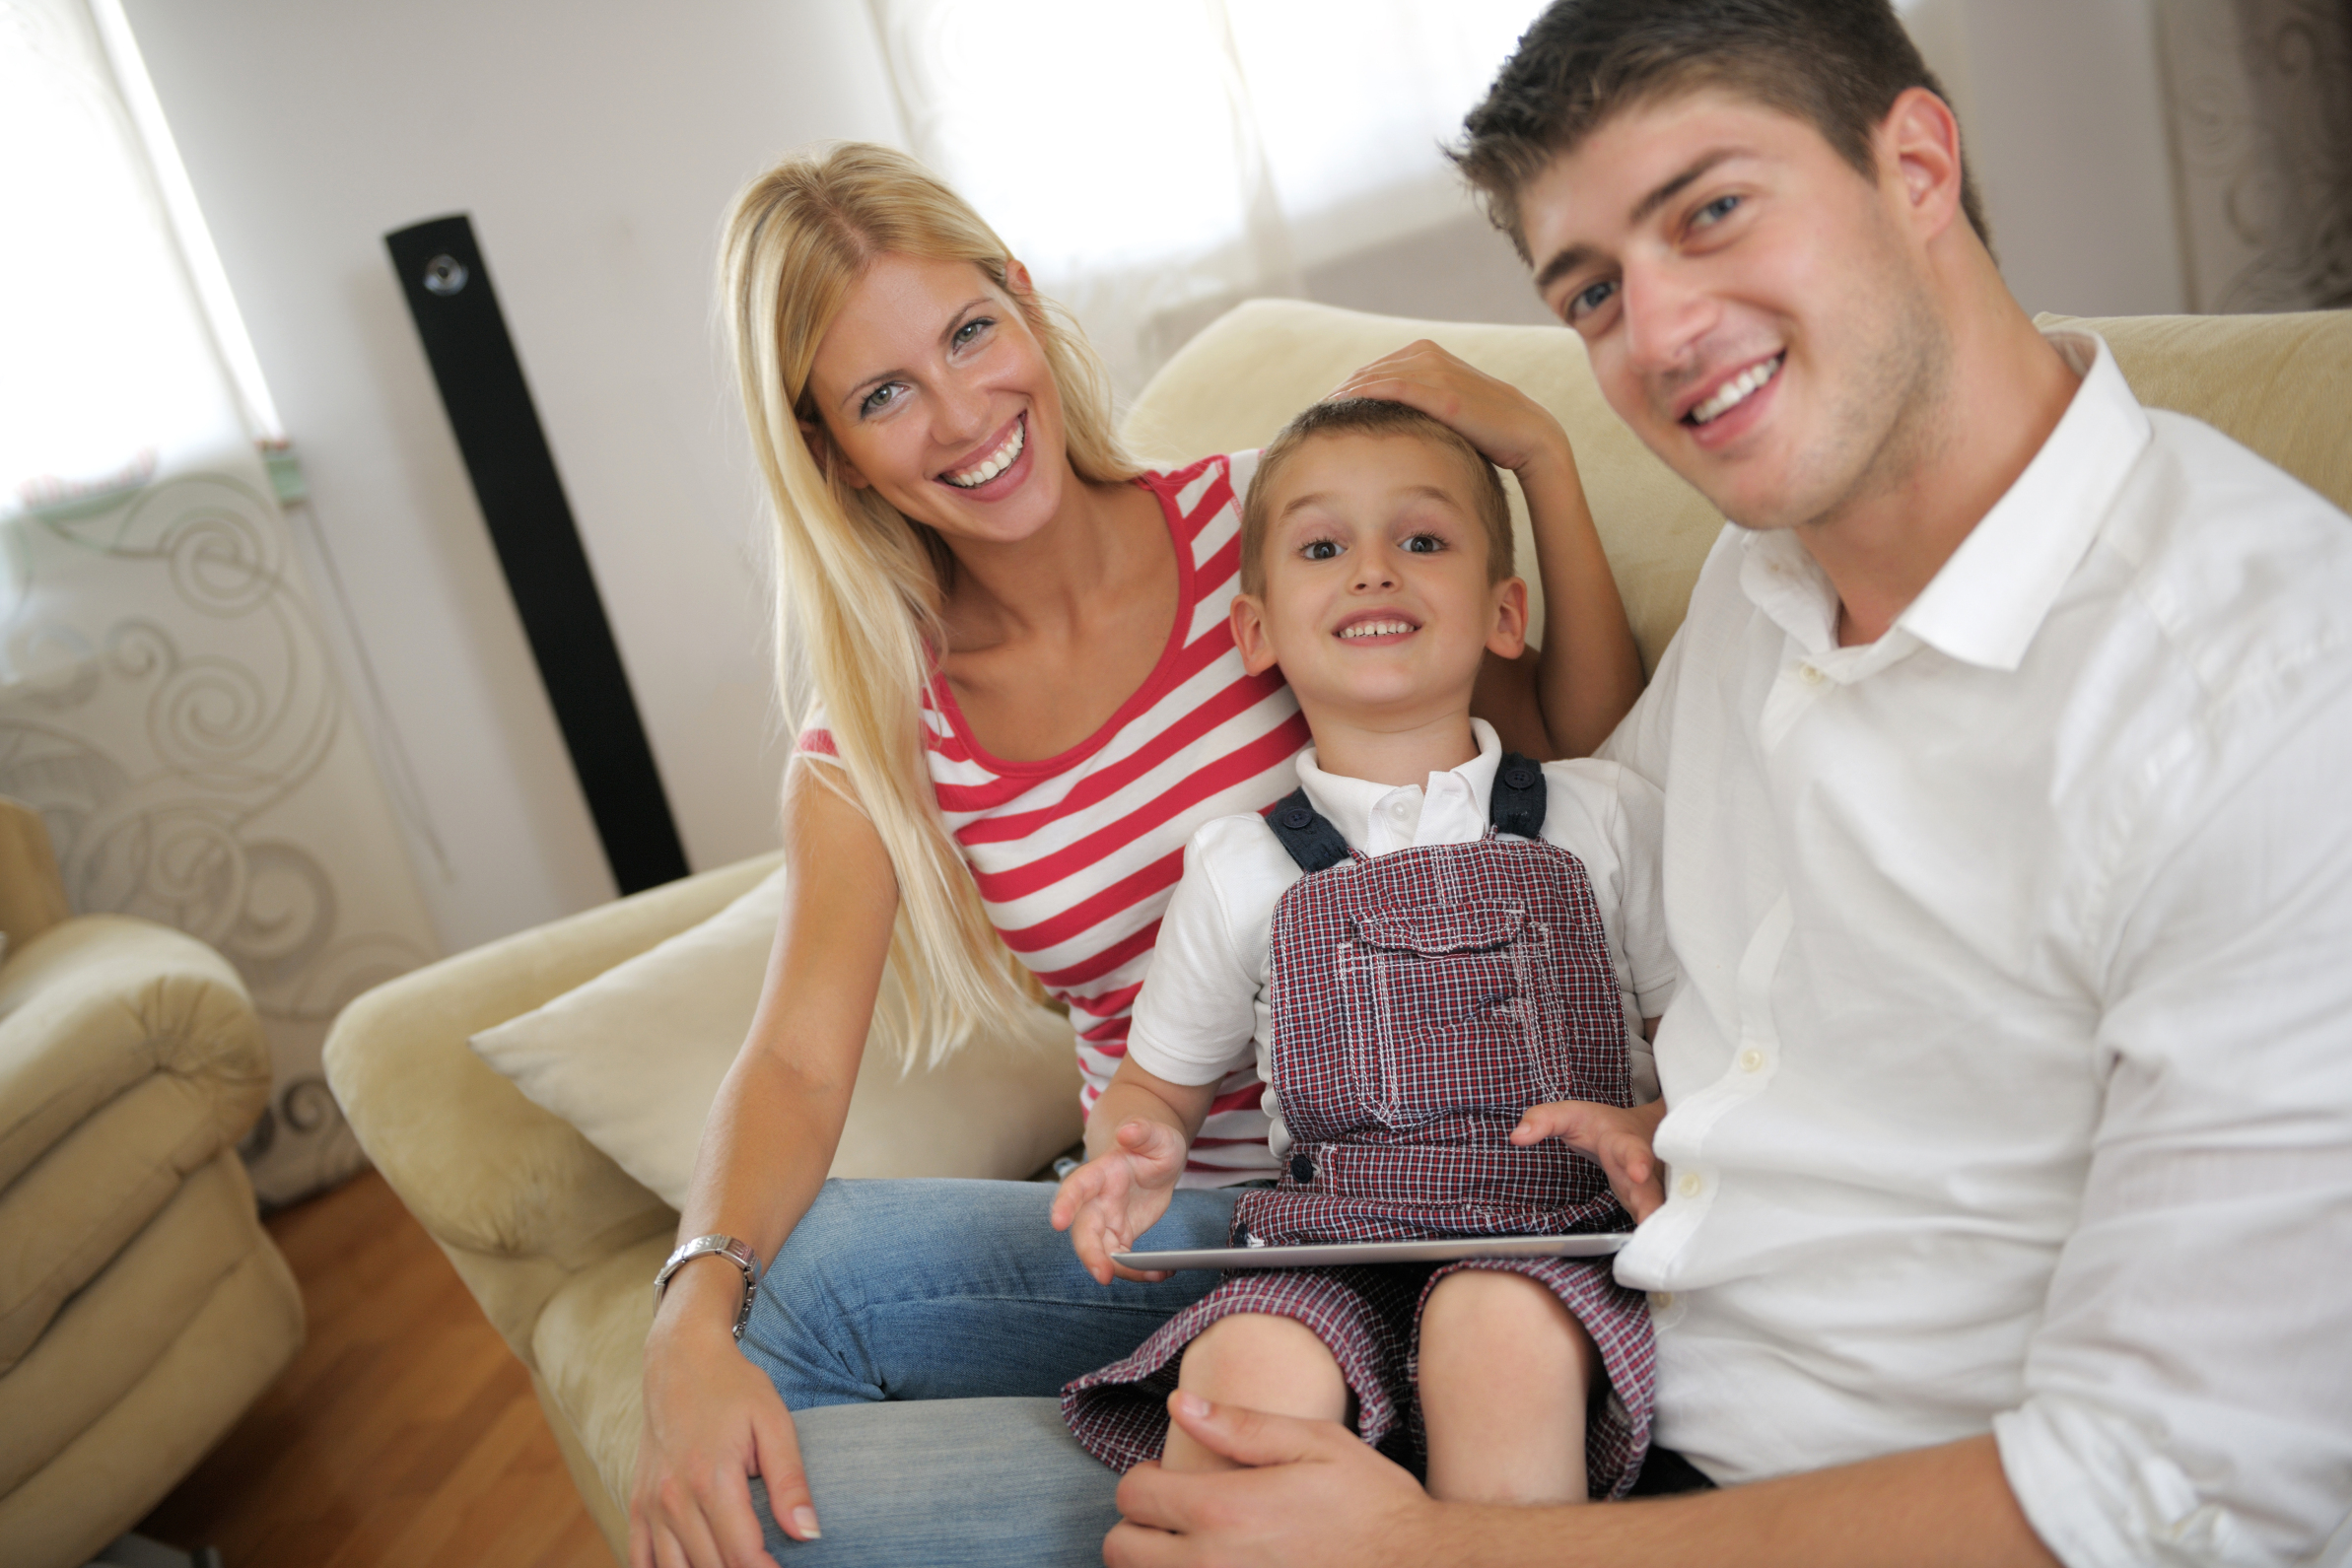 How Parents Can Protect Their Children Online